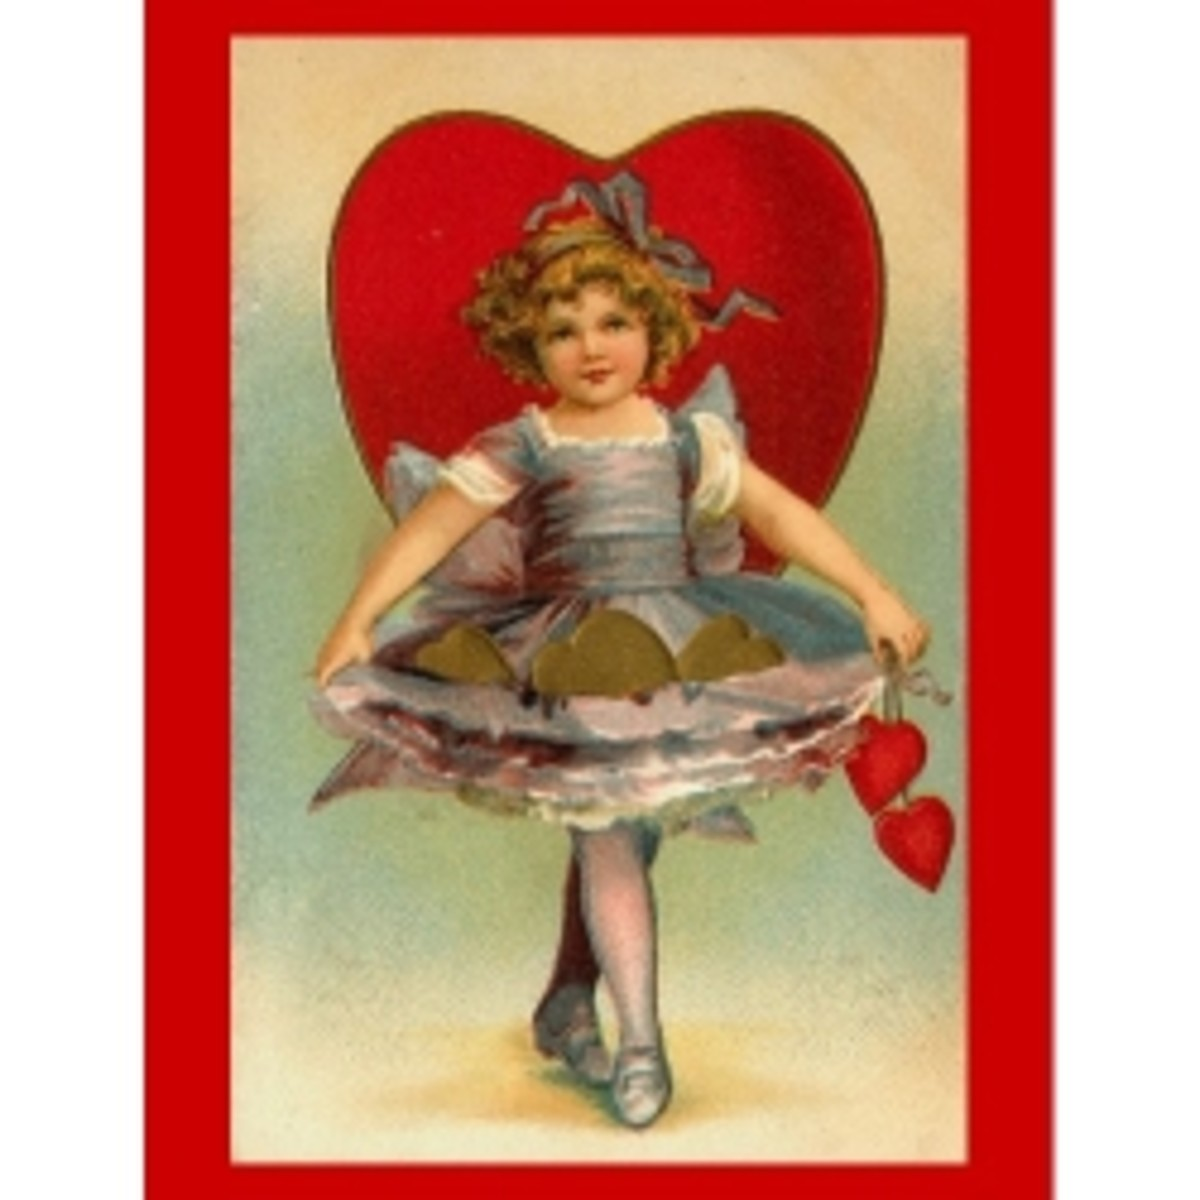 My Tips for Collecting and Displaying Vintage Valentines